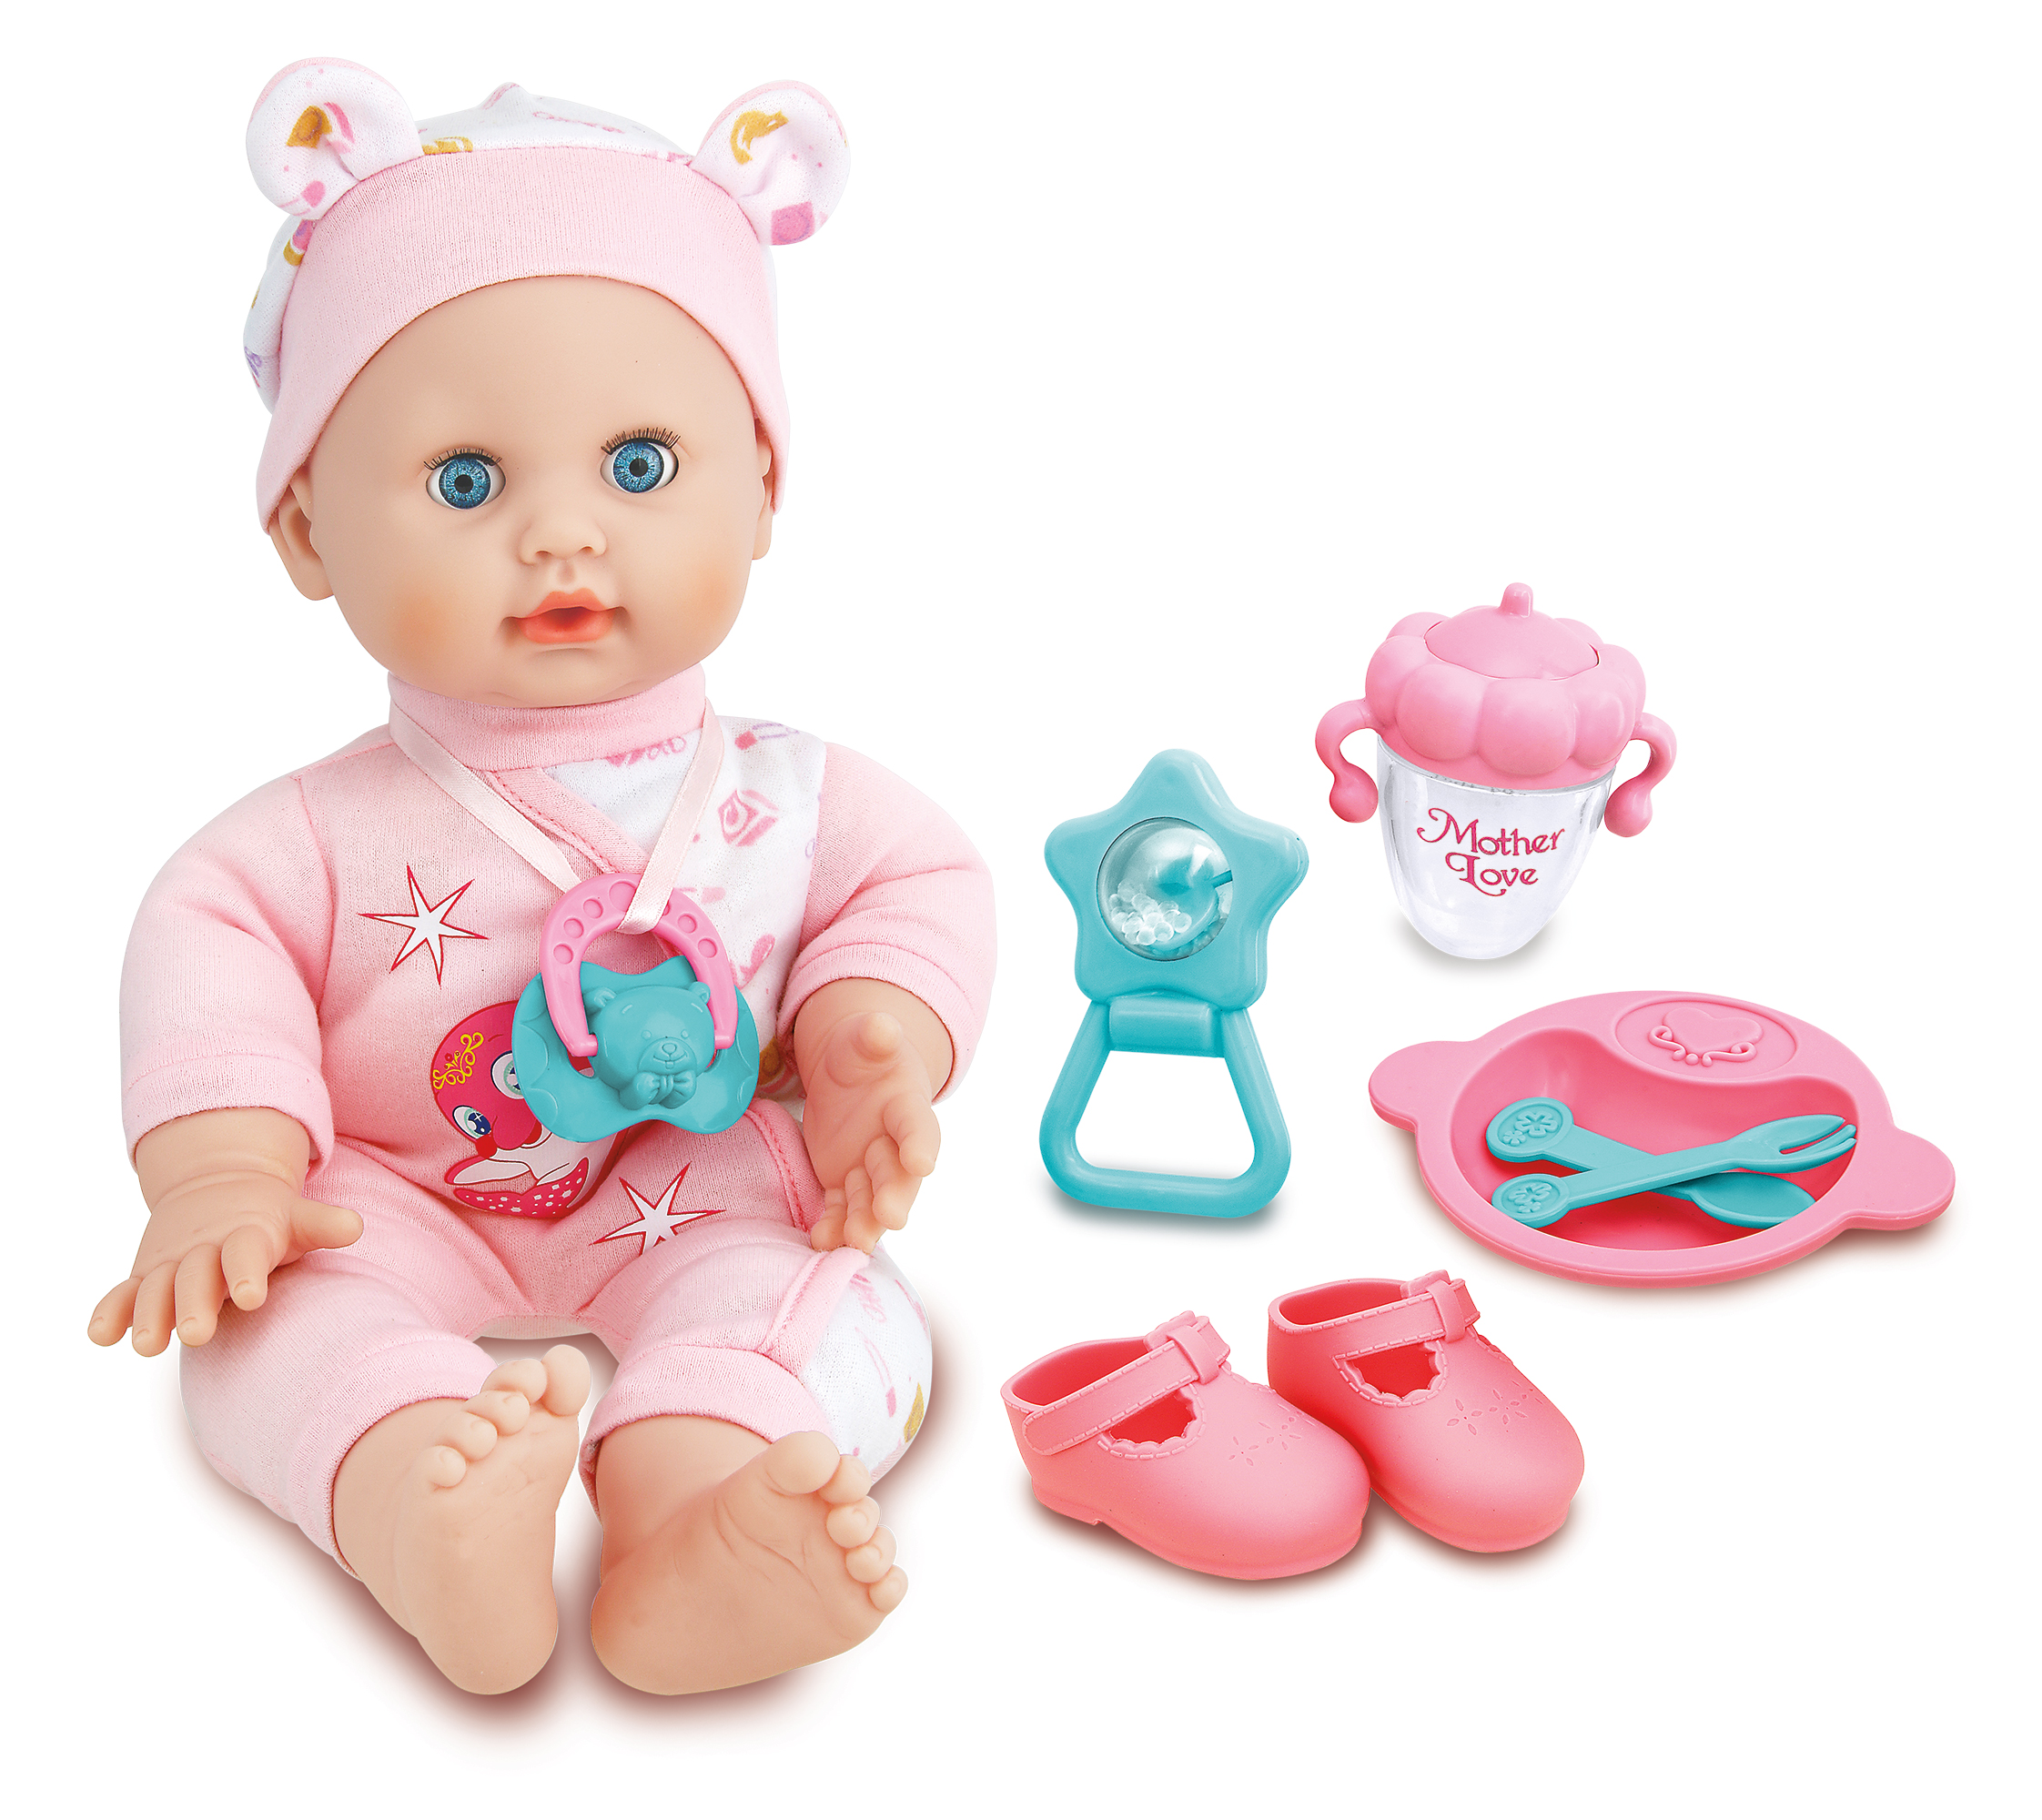 Mother Love - Snuggle and Cuddle Doll (1450)